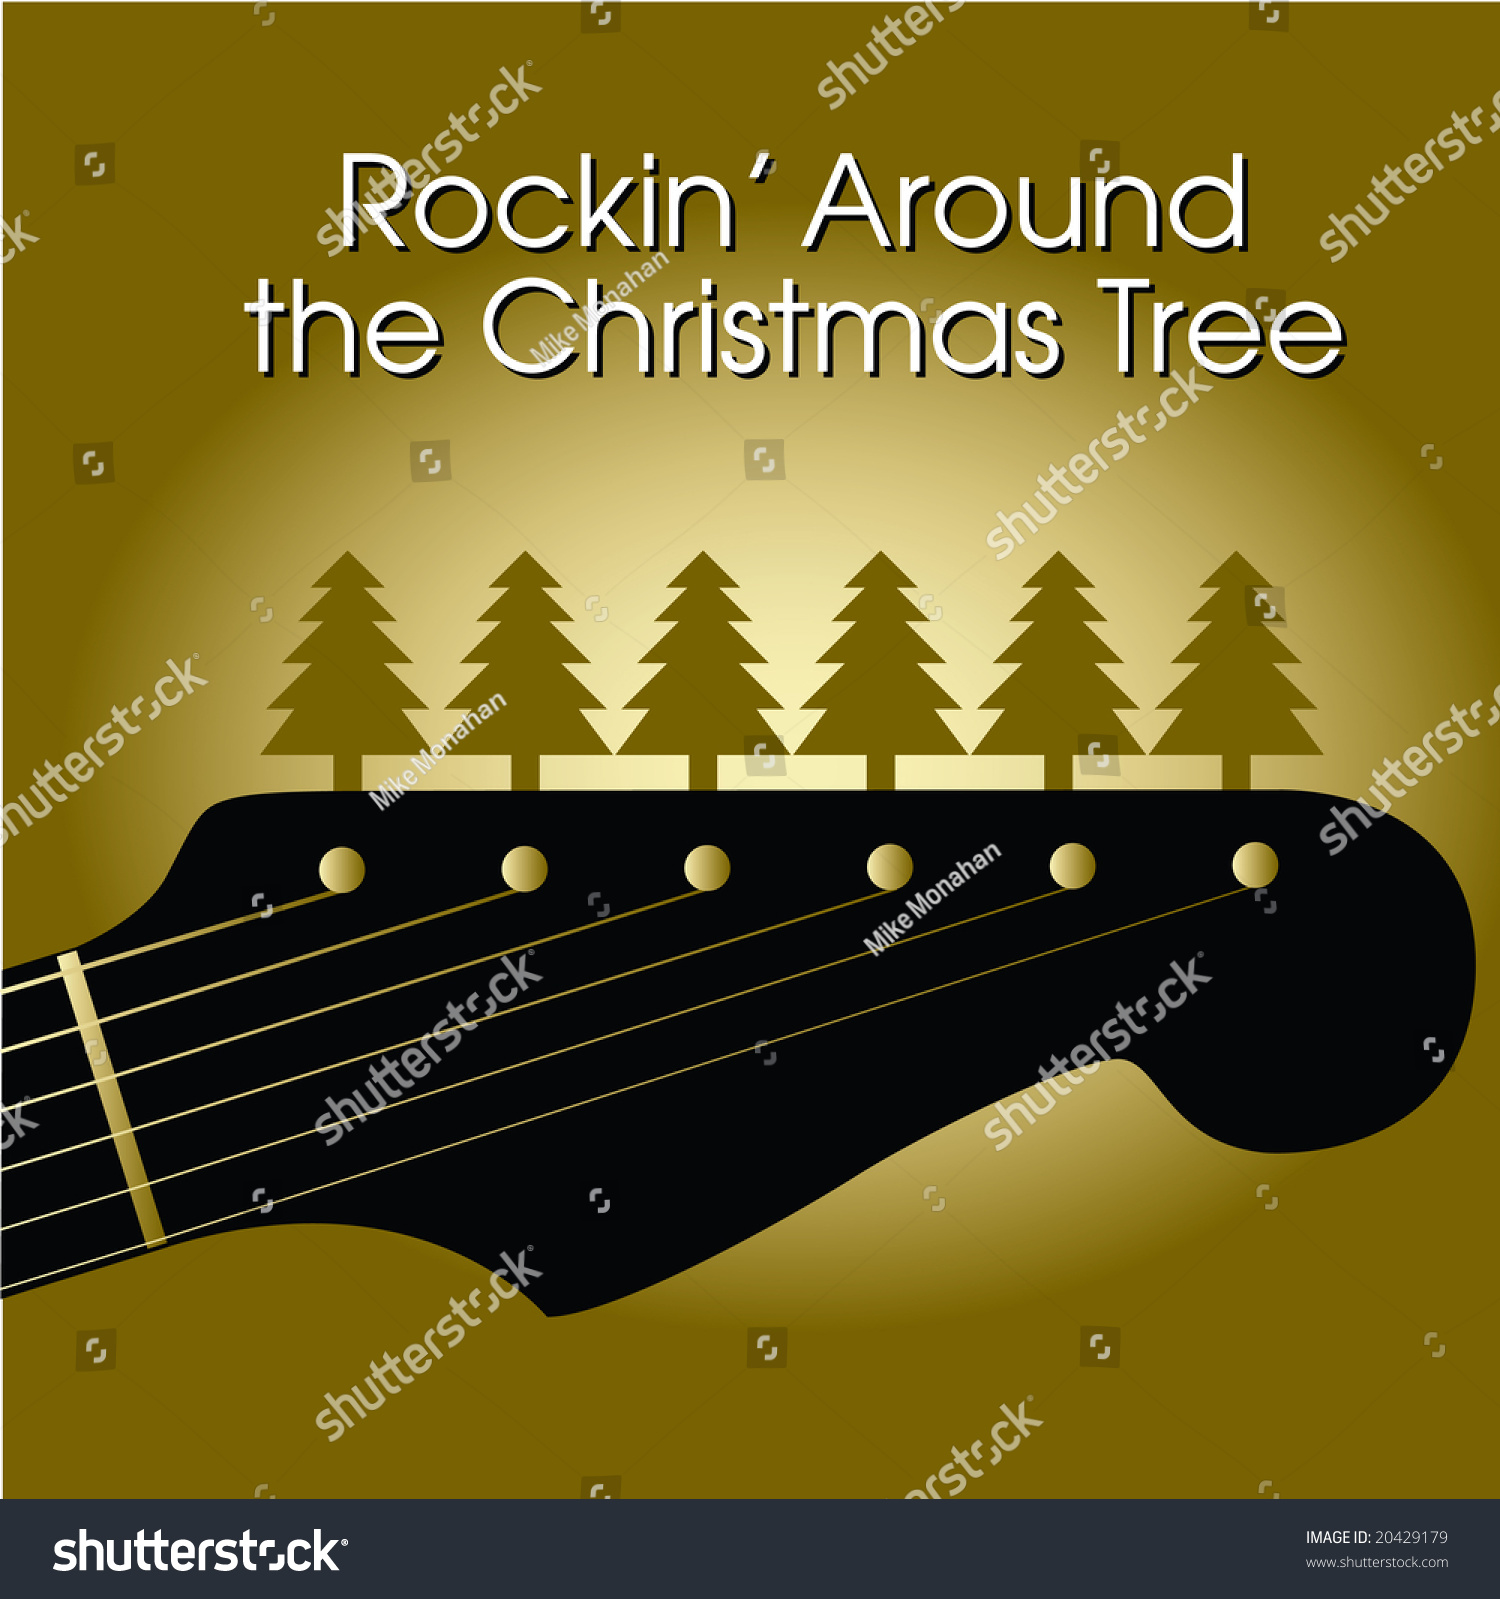 Rockin around christmas tree stock illustration 20429179 for Around the tree